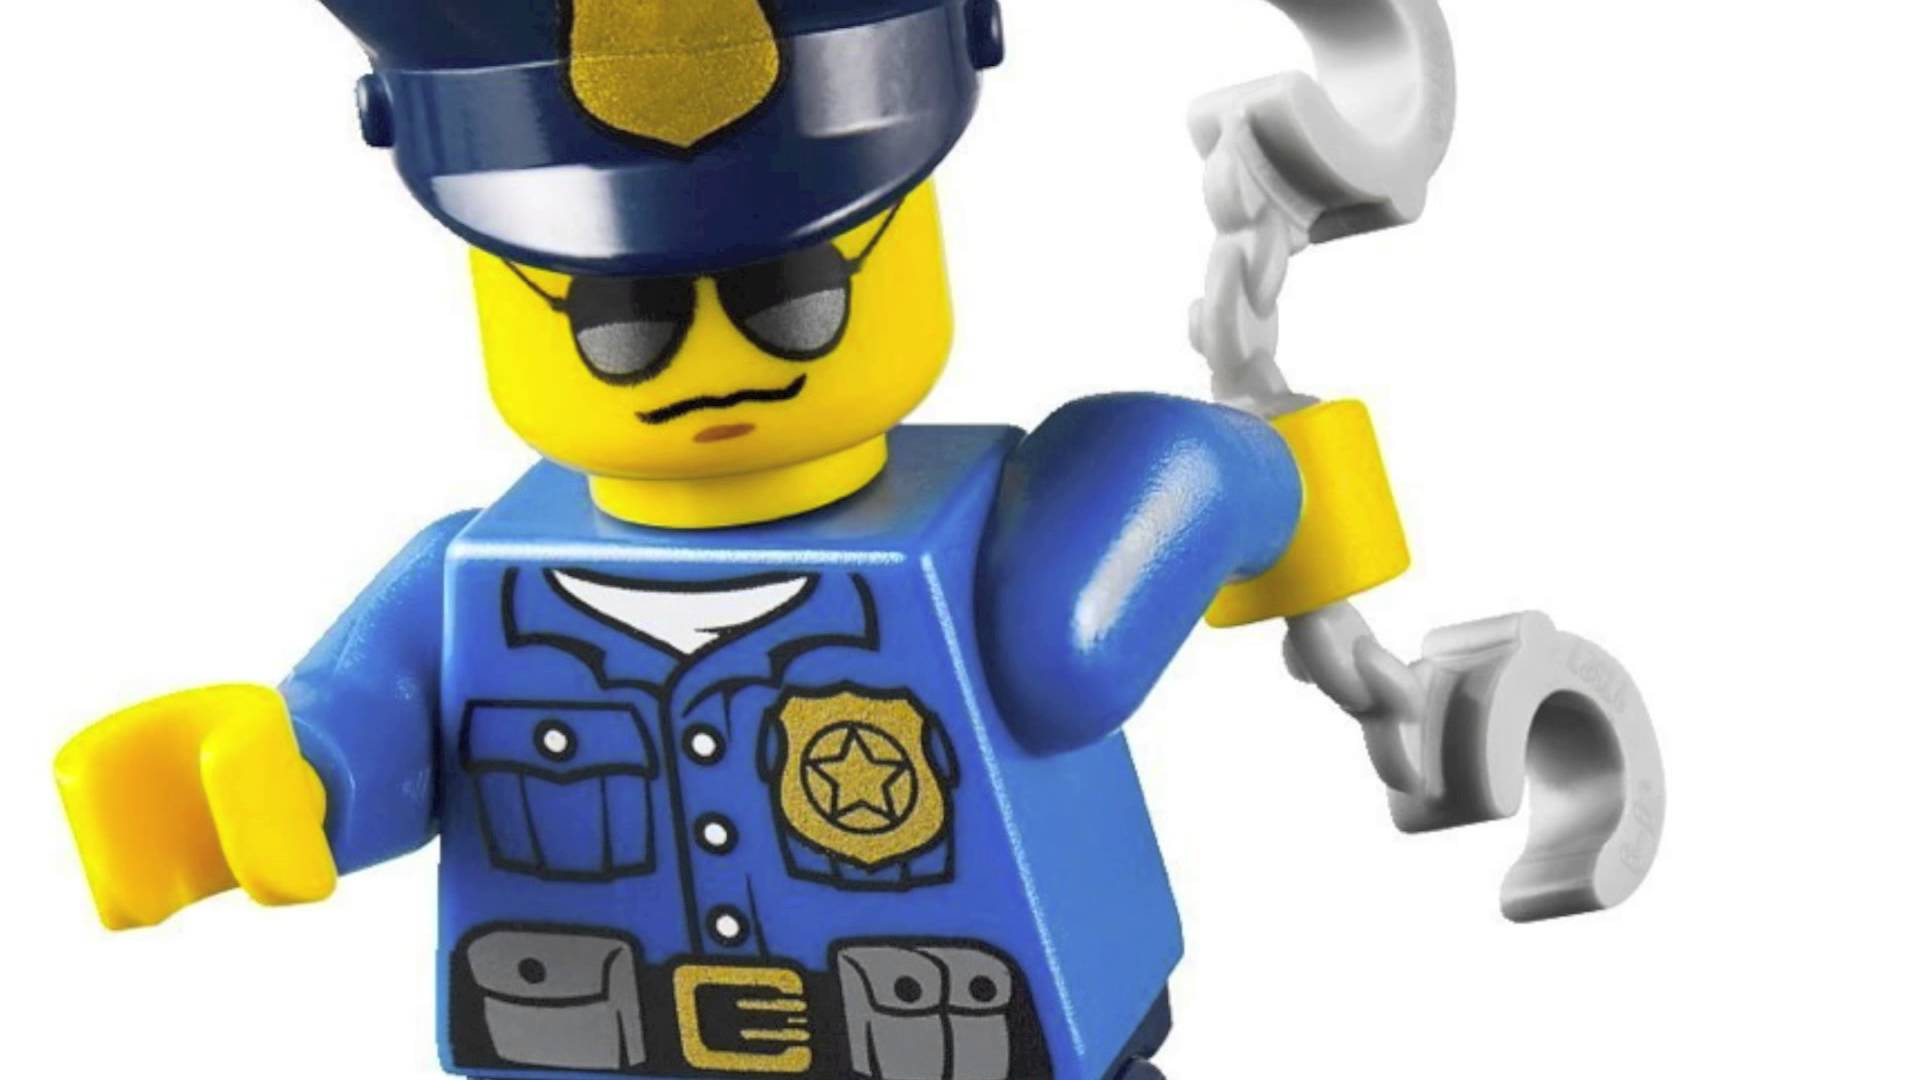 Cute Baby Pictures Wallpapers Free Download Download Lego Police Wallpaper Gallery